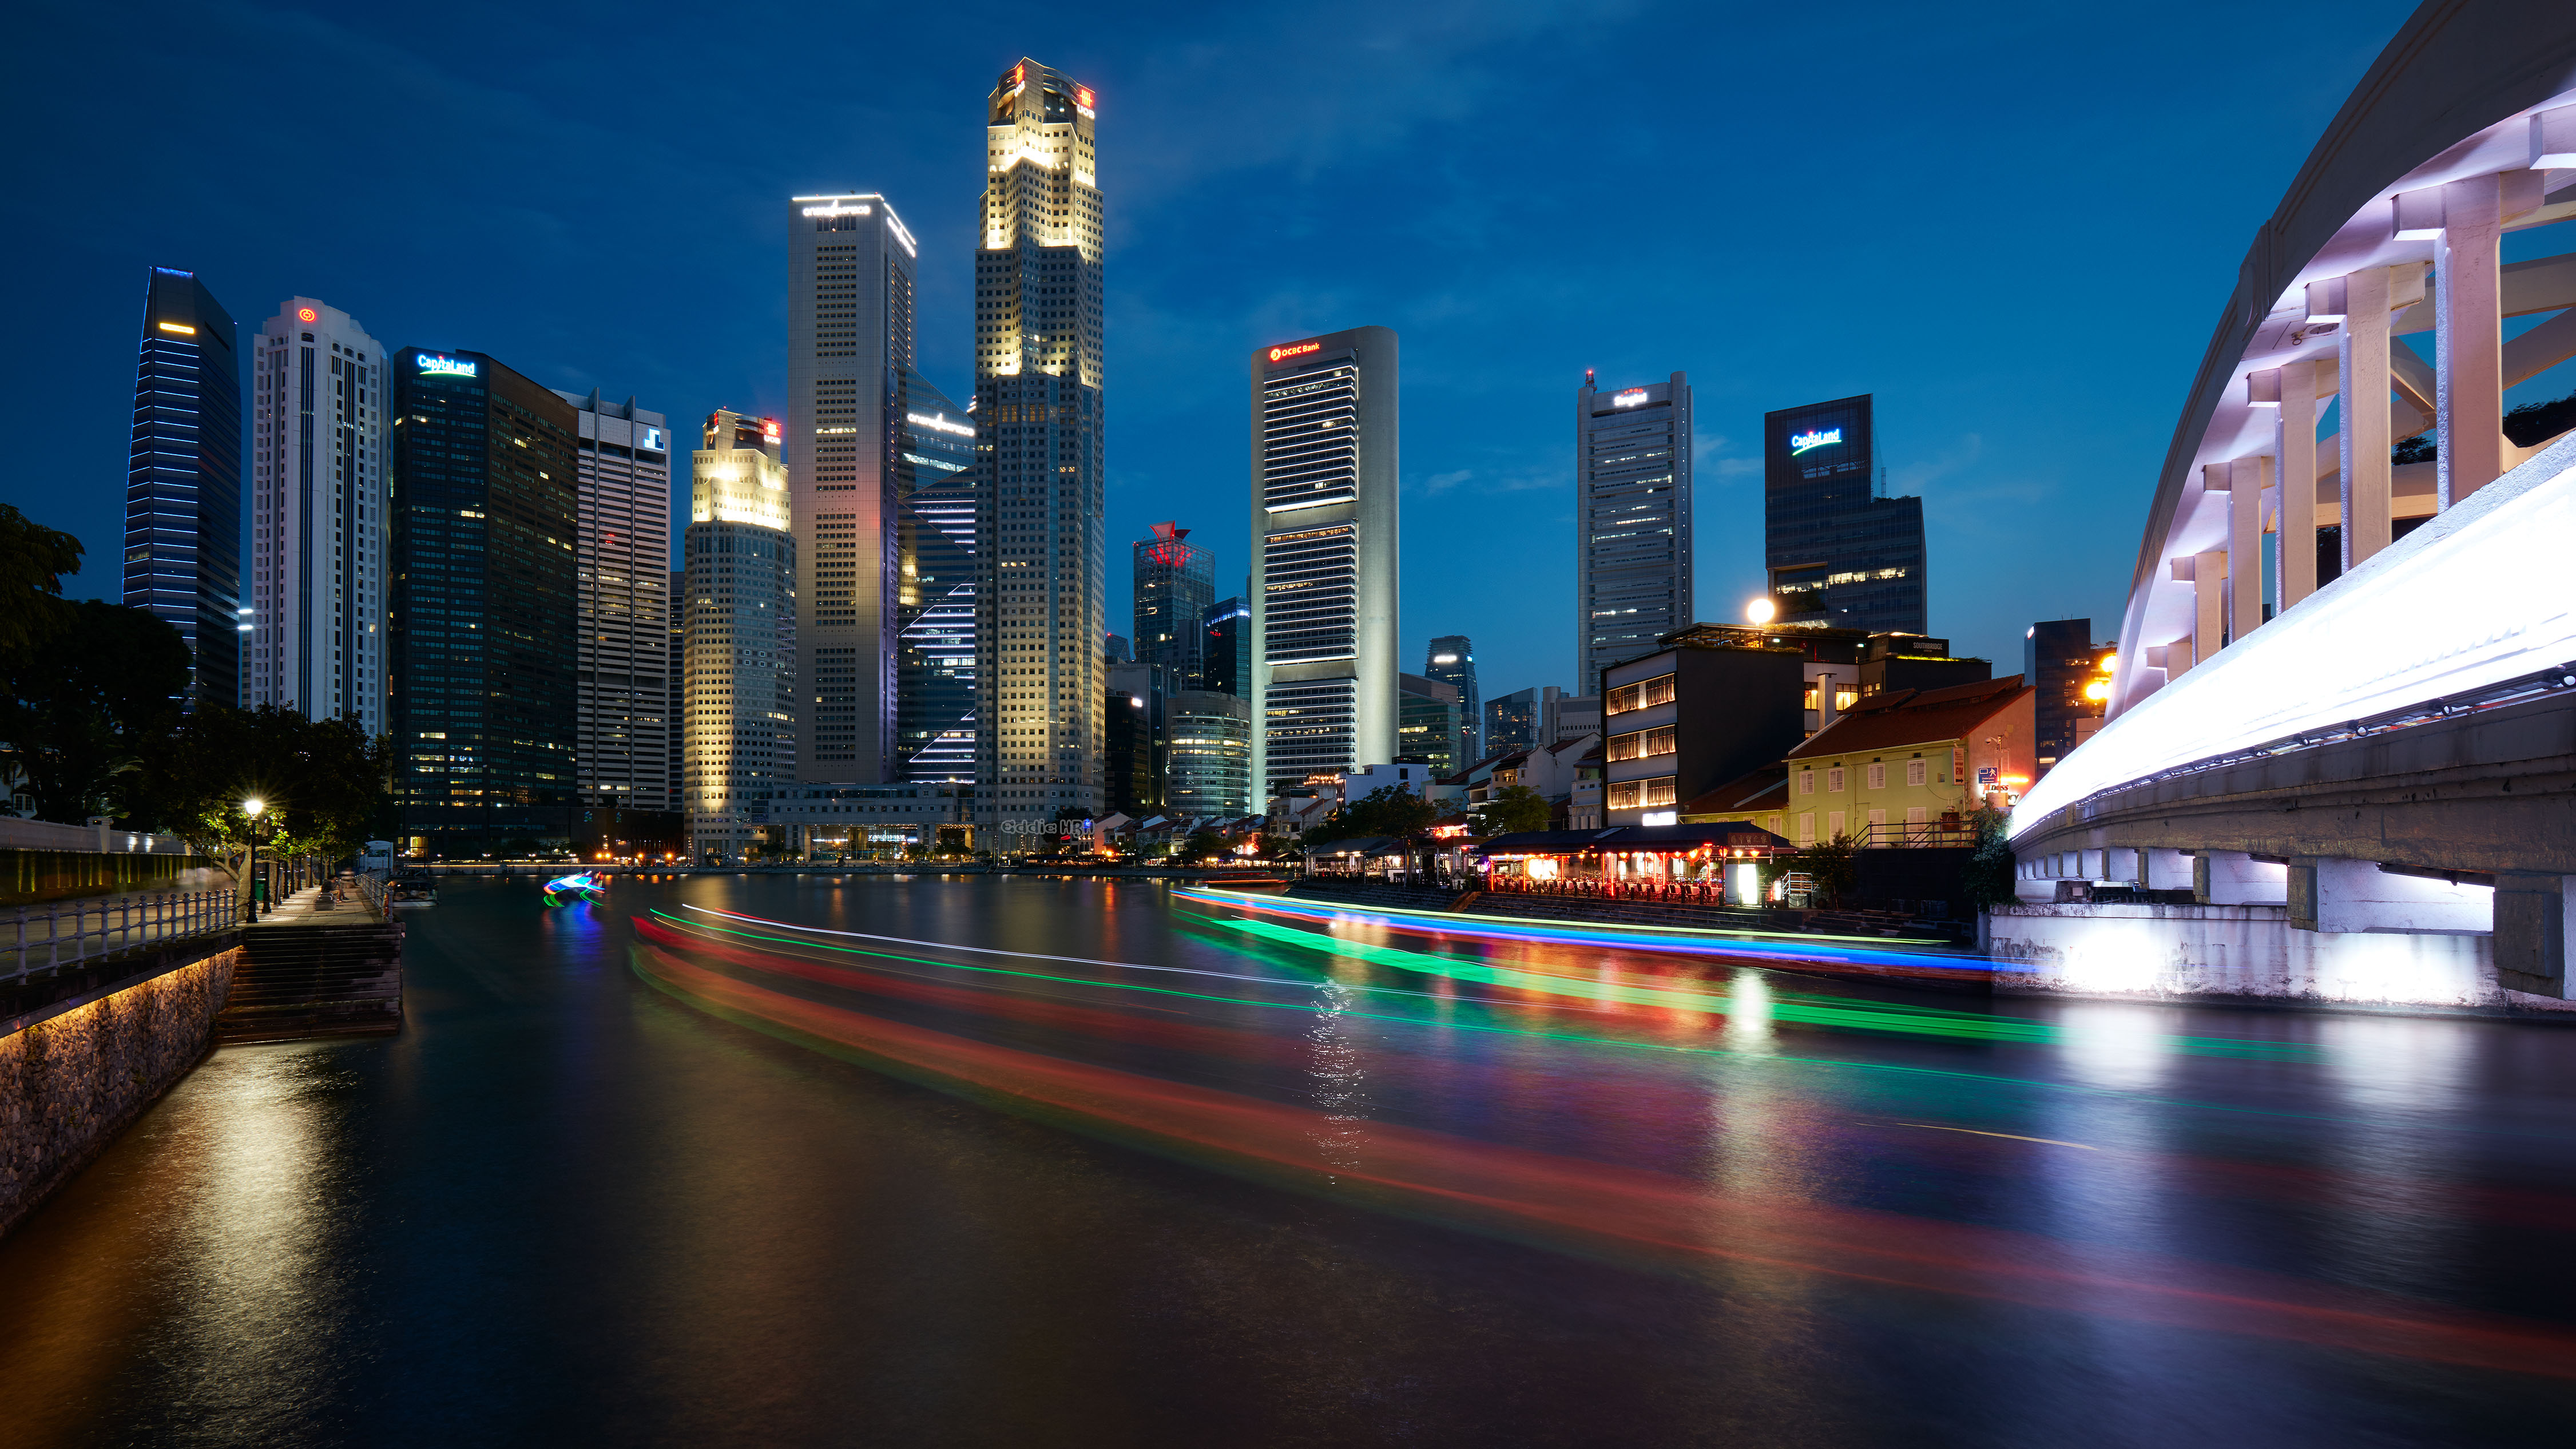 On the Singapore river